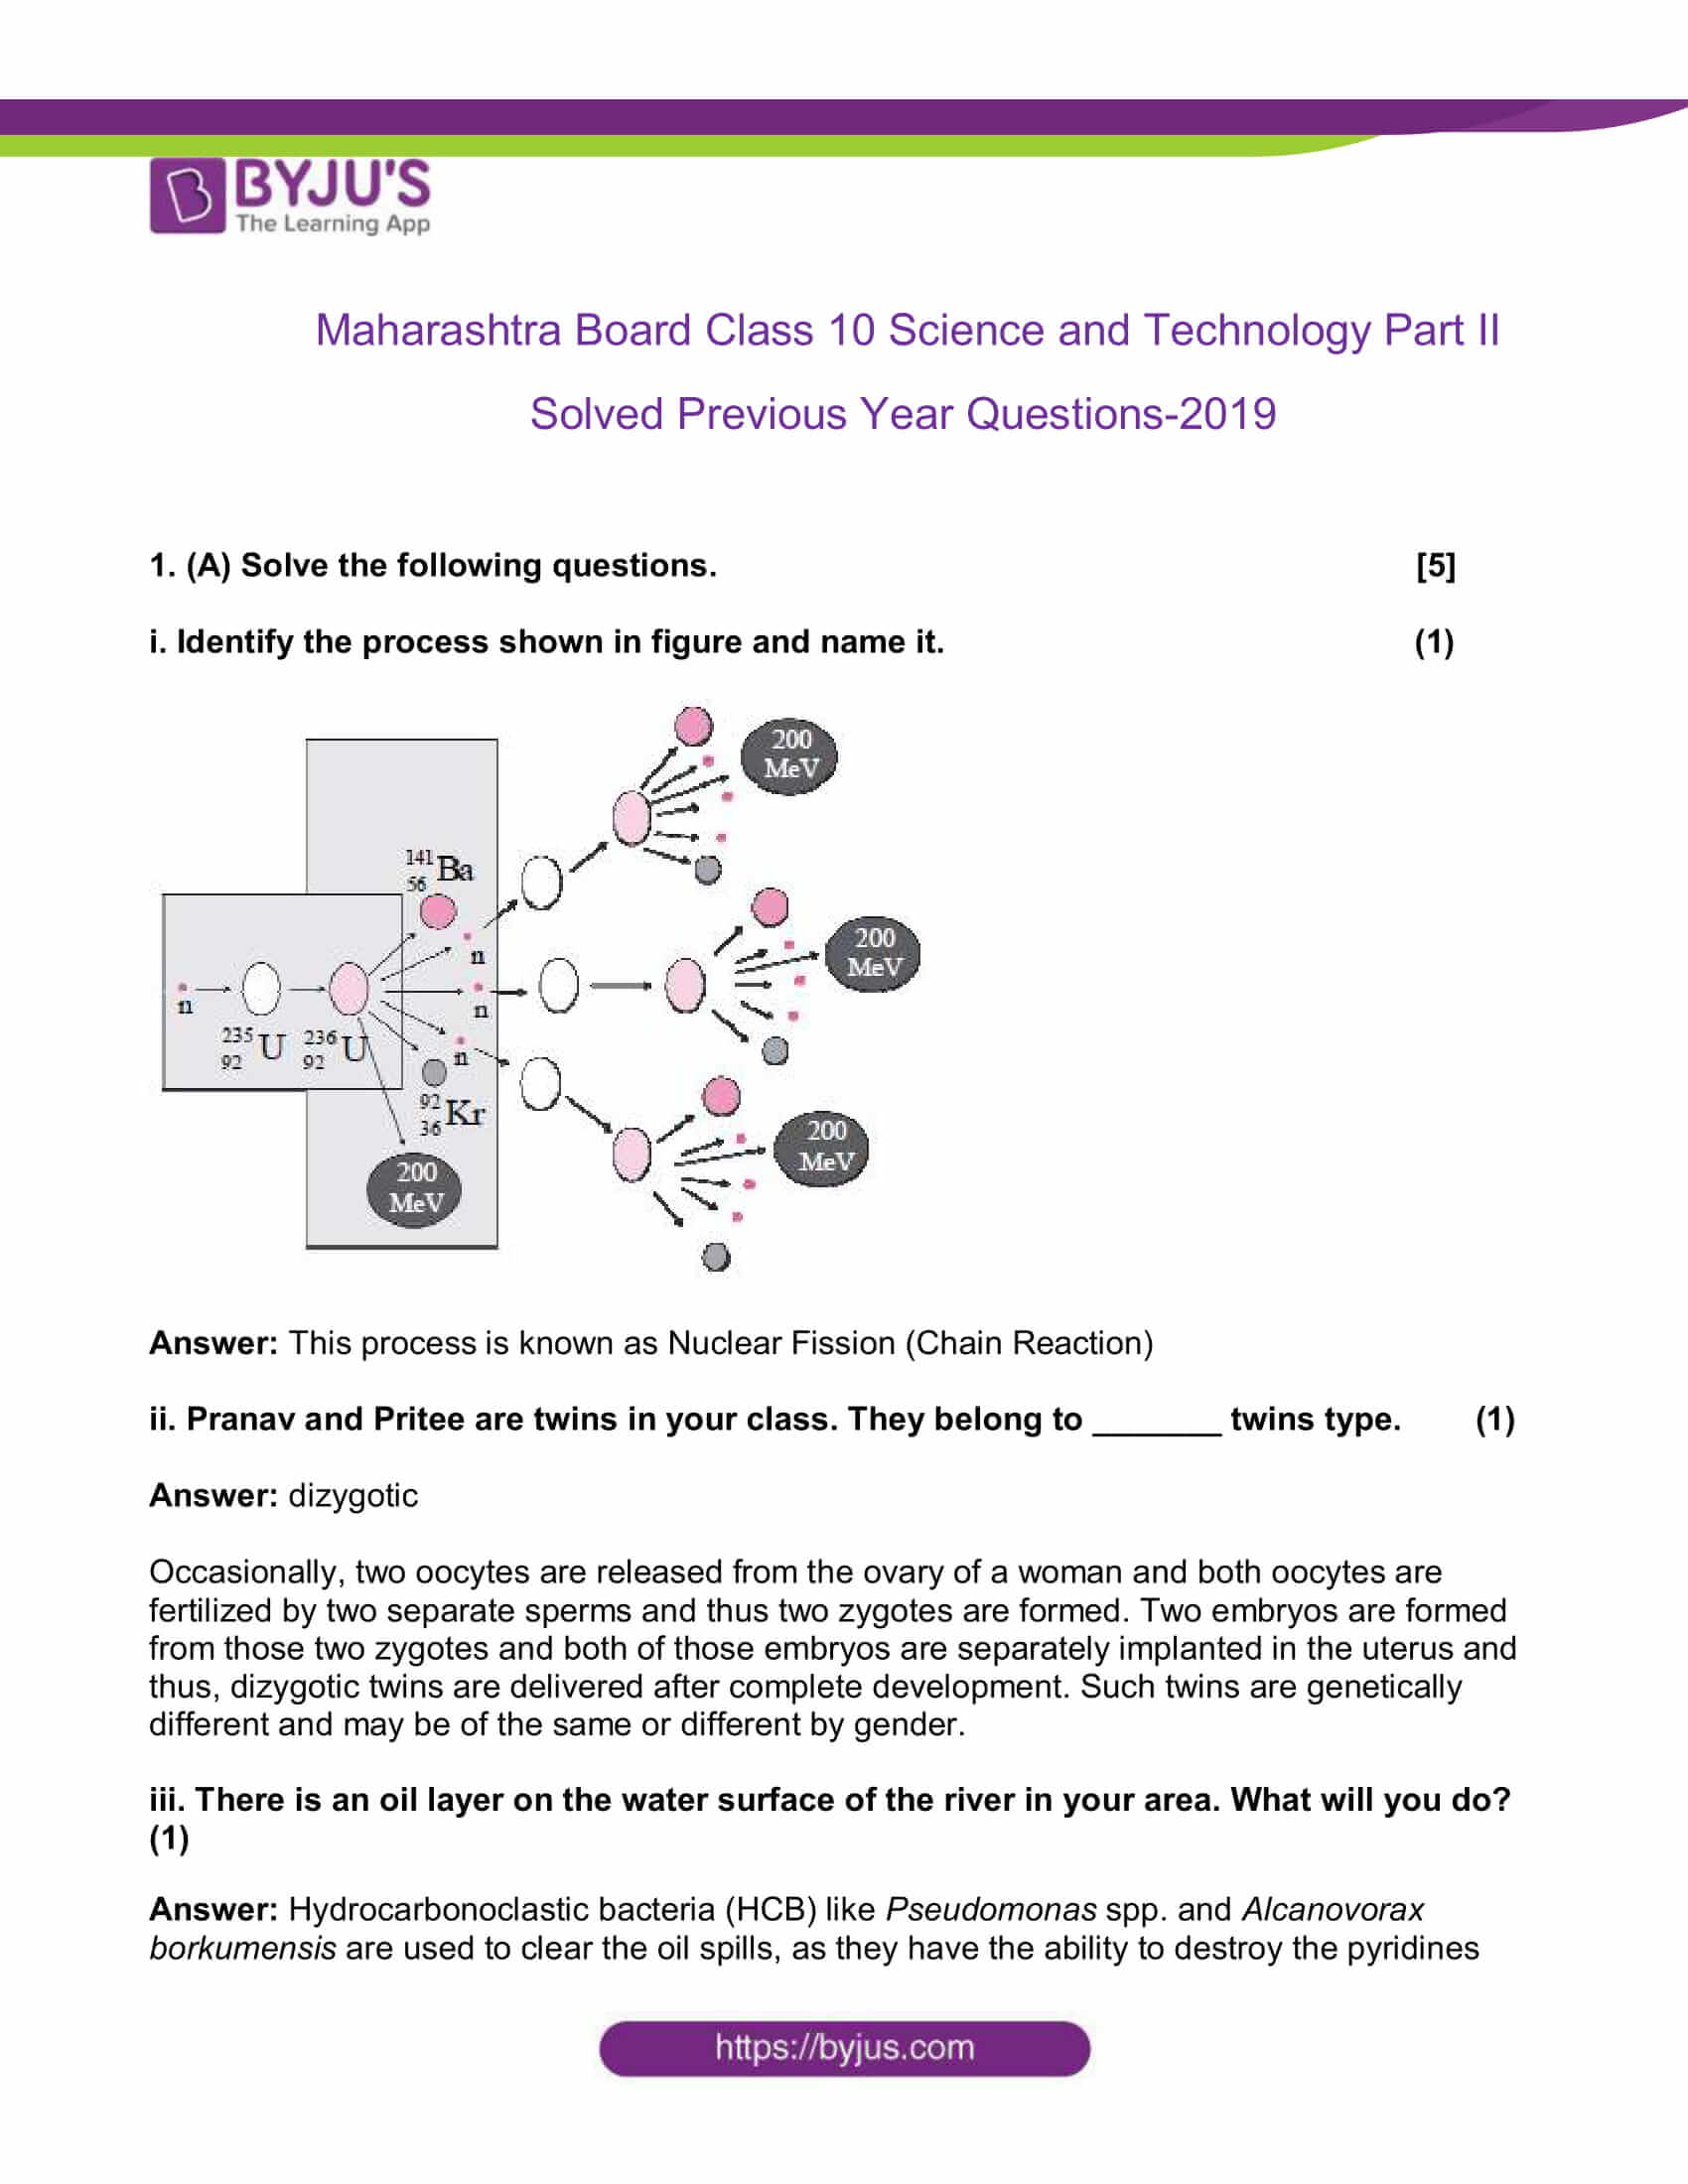 maharashtra board class 10 sci p2 previous year qs paper 2019 solved 01